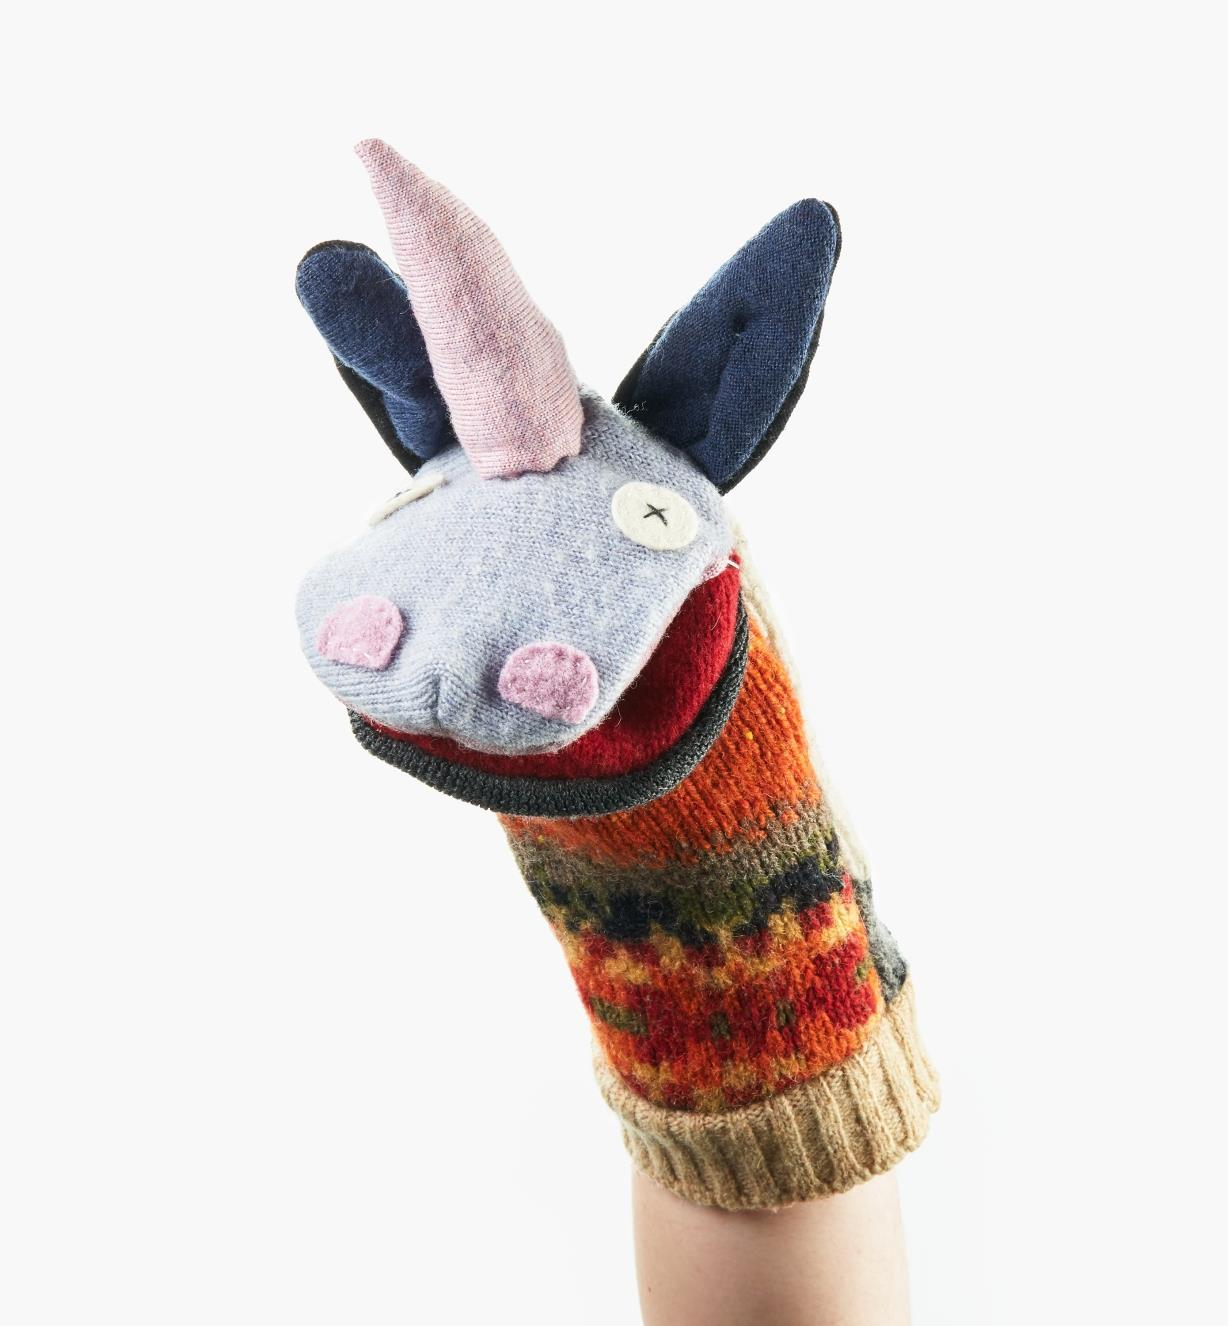 A completed unicorn puppet on a person's hand